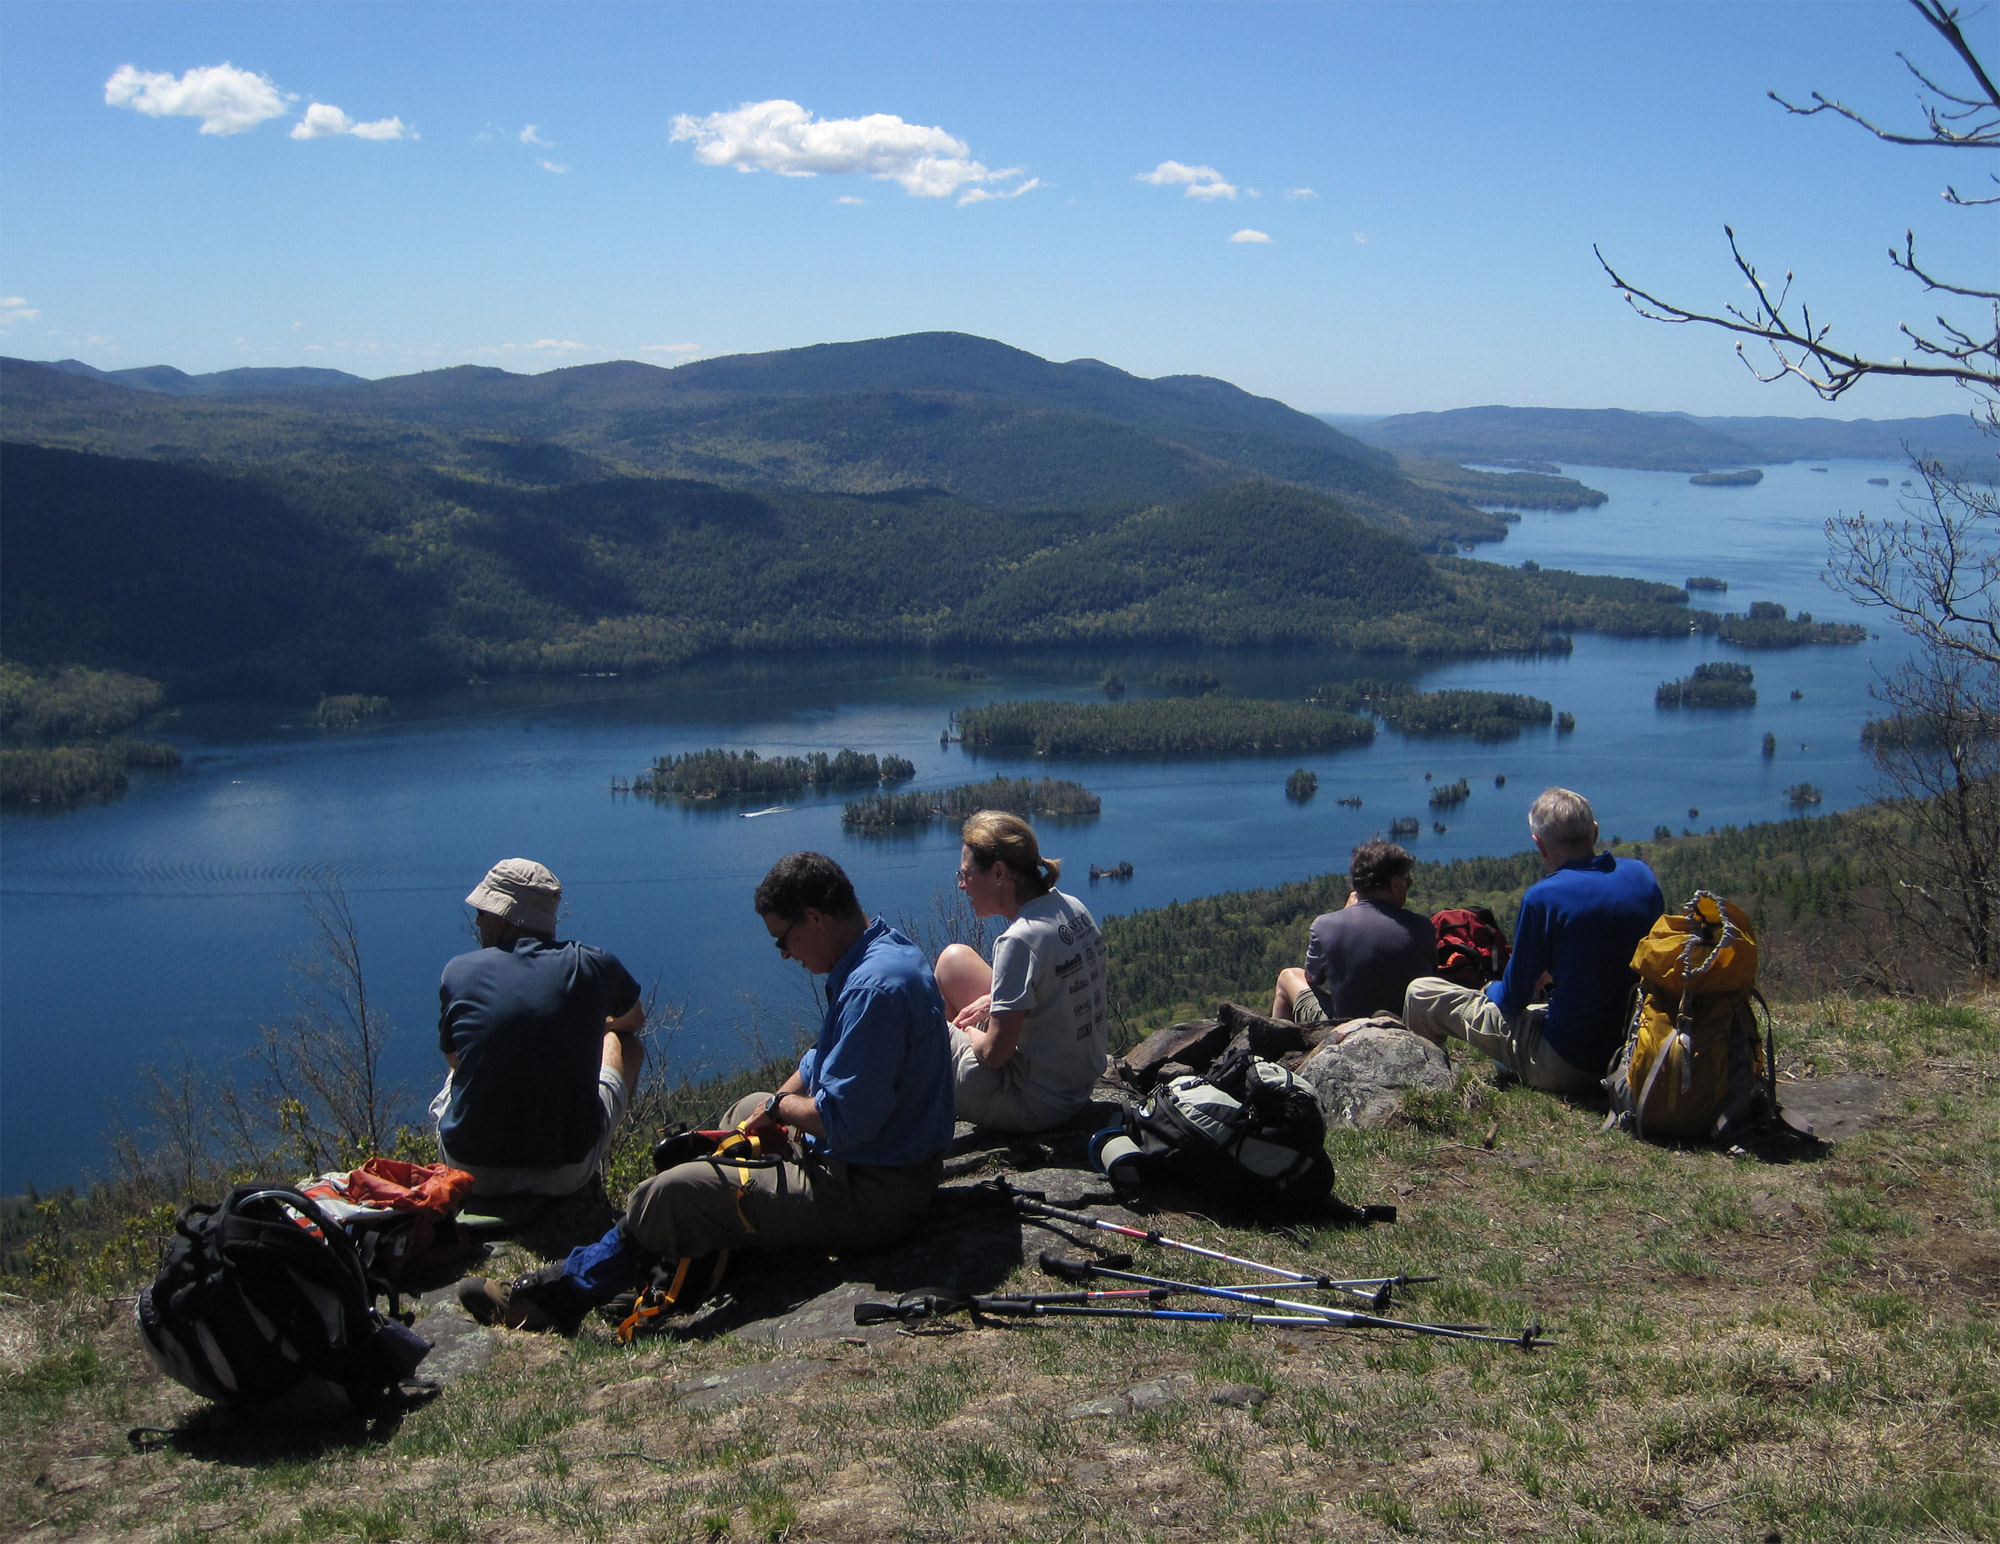 Hikers enjoying a view of Lake George